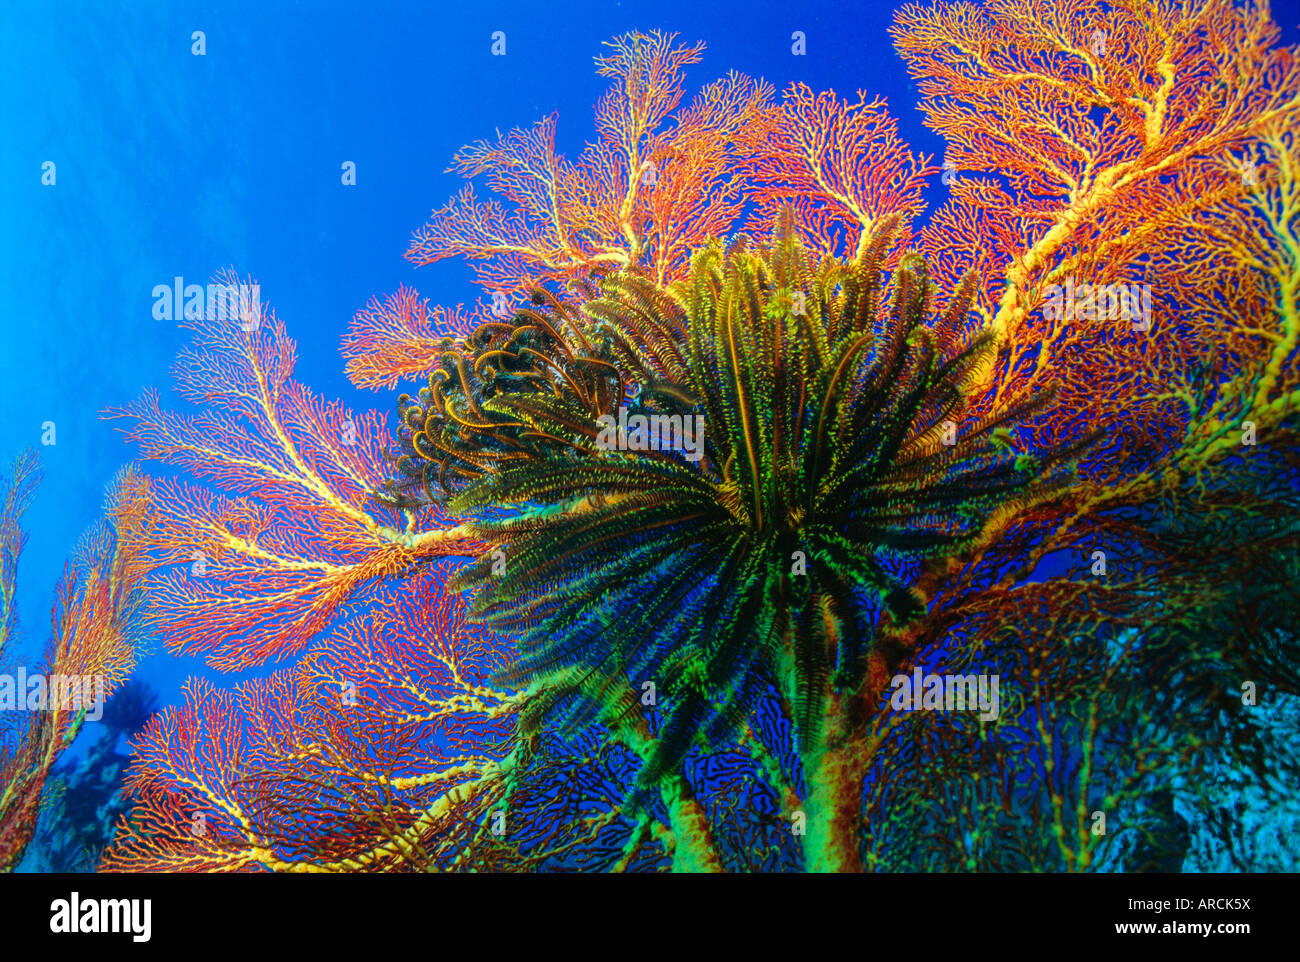 Featherstars perch on the edge of Gorgonian Sea Fans to feed in the current, Fiji, Pacific Ocean Stock Photo